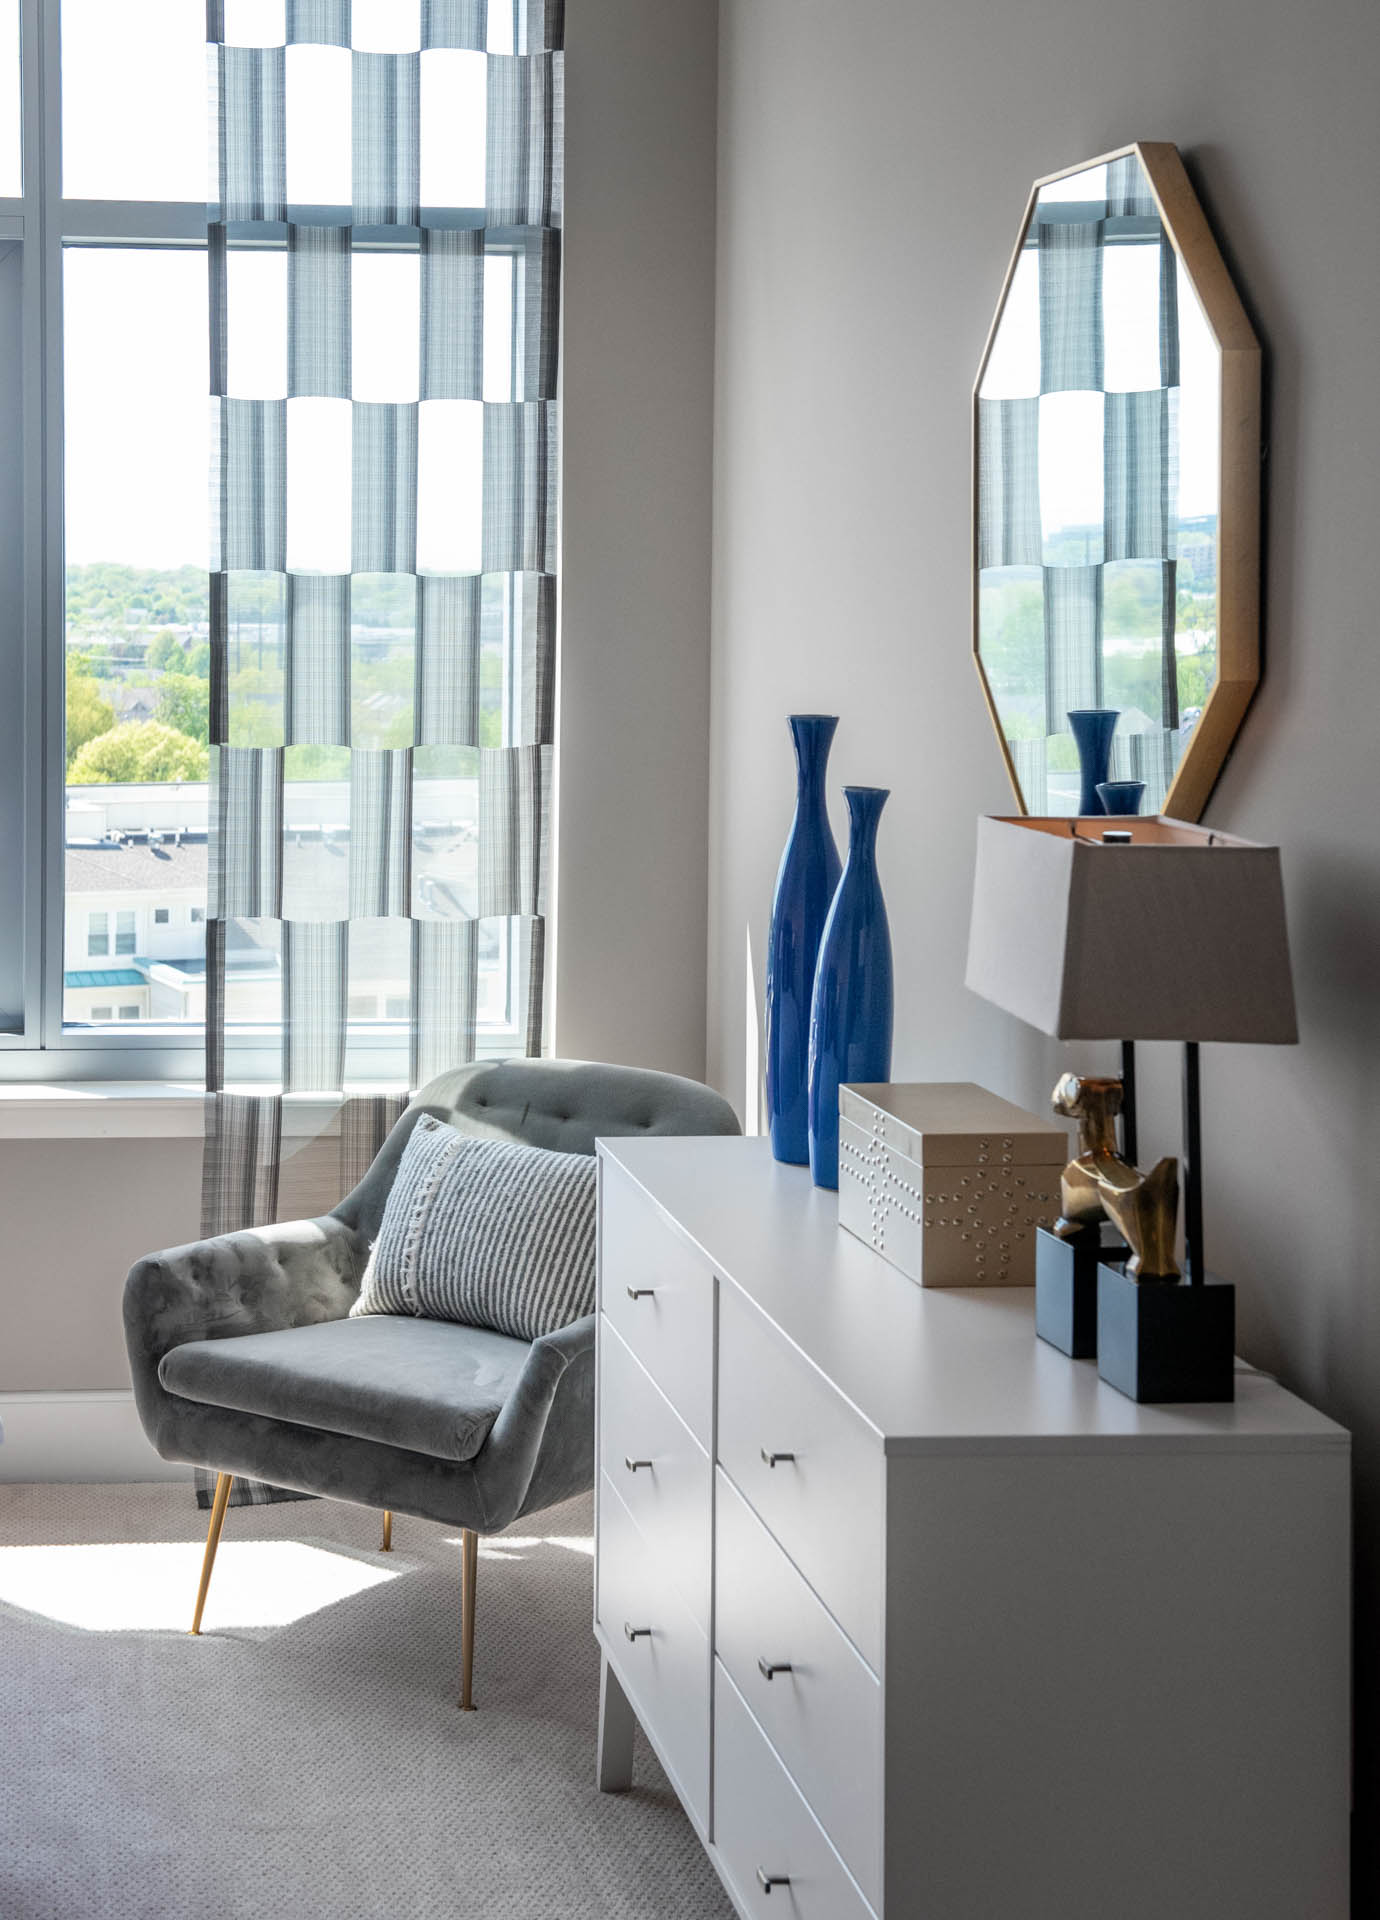 Close in detail of window lighting up gray, midcentury armchair and white dresser